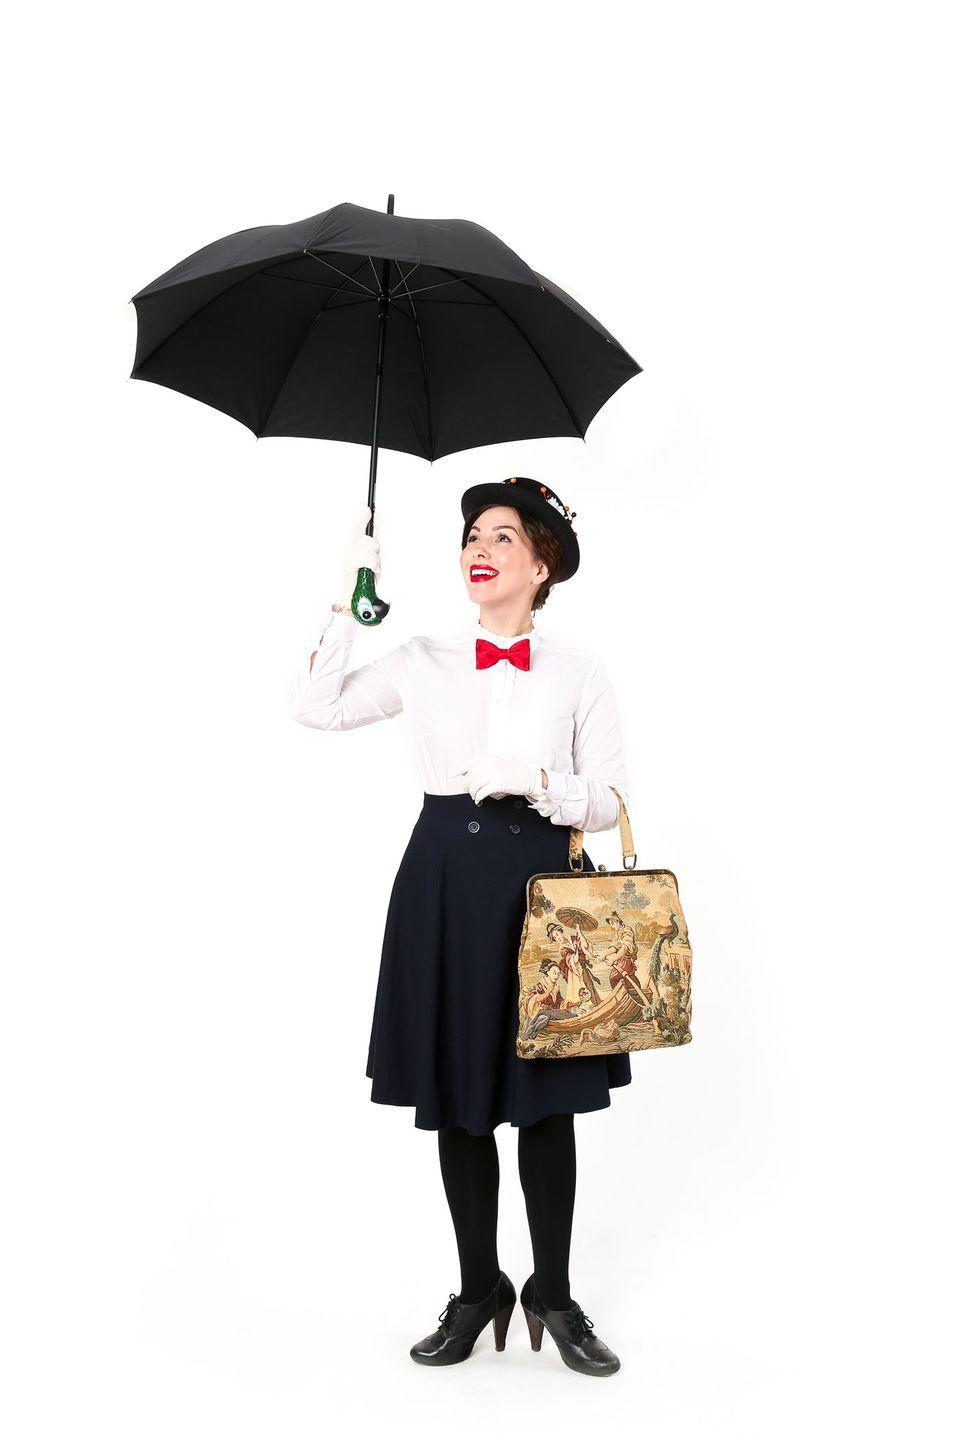 """<p>Not only is our favorite magical nanny a brunette, her timeless look is also incredibly easy to emulate with just an umbrella, bowler hat and a pinned red bow on your white ruffled blouse. </p><p><a href=""""https://keikolynn.com/2016/10/mary-poppins-and-bert-couples-costume/"""" rel=""""nofollow noopener"""" target=""""_blank"""" data-ylk=""""slk:Get the tutorial at Keiko Lynn »"""" class=""""link rapid-noclick-resp""""><em>Get the tutorial at Keiko Lynn » </em></a> </p>"""